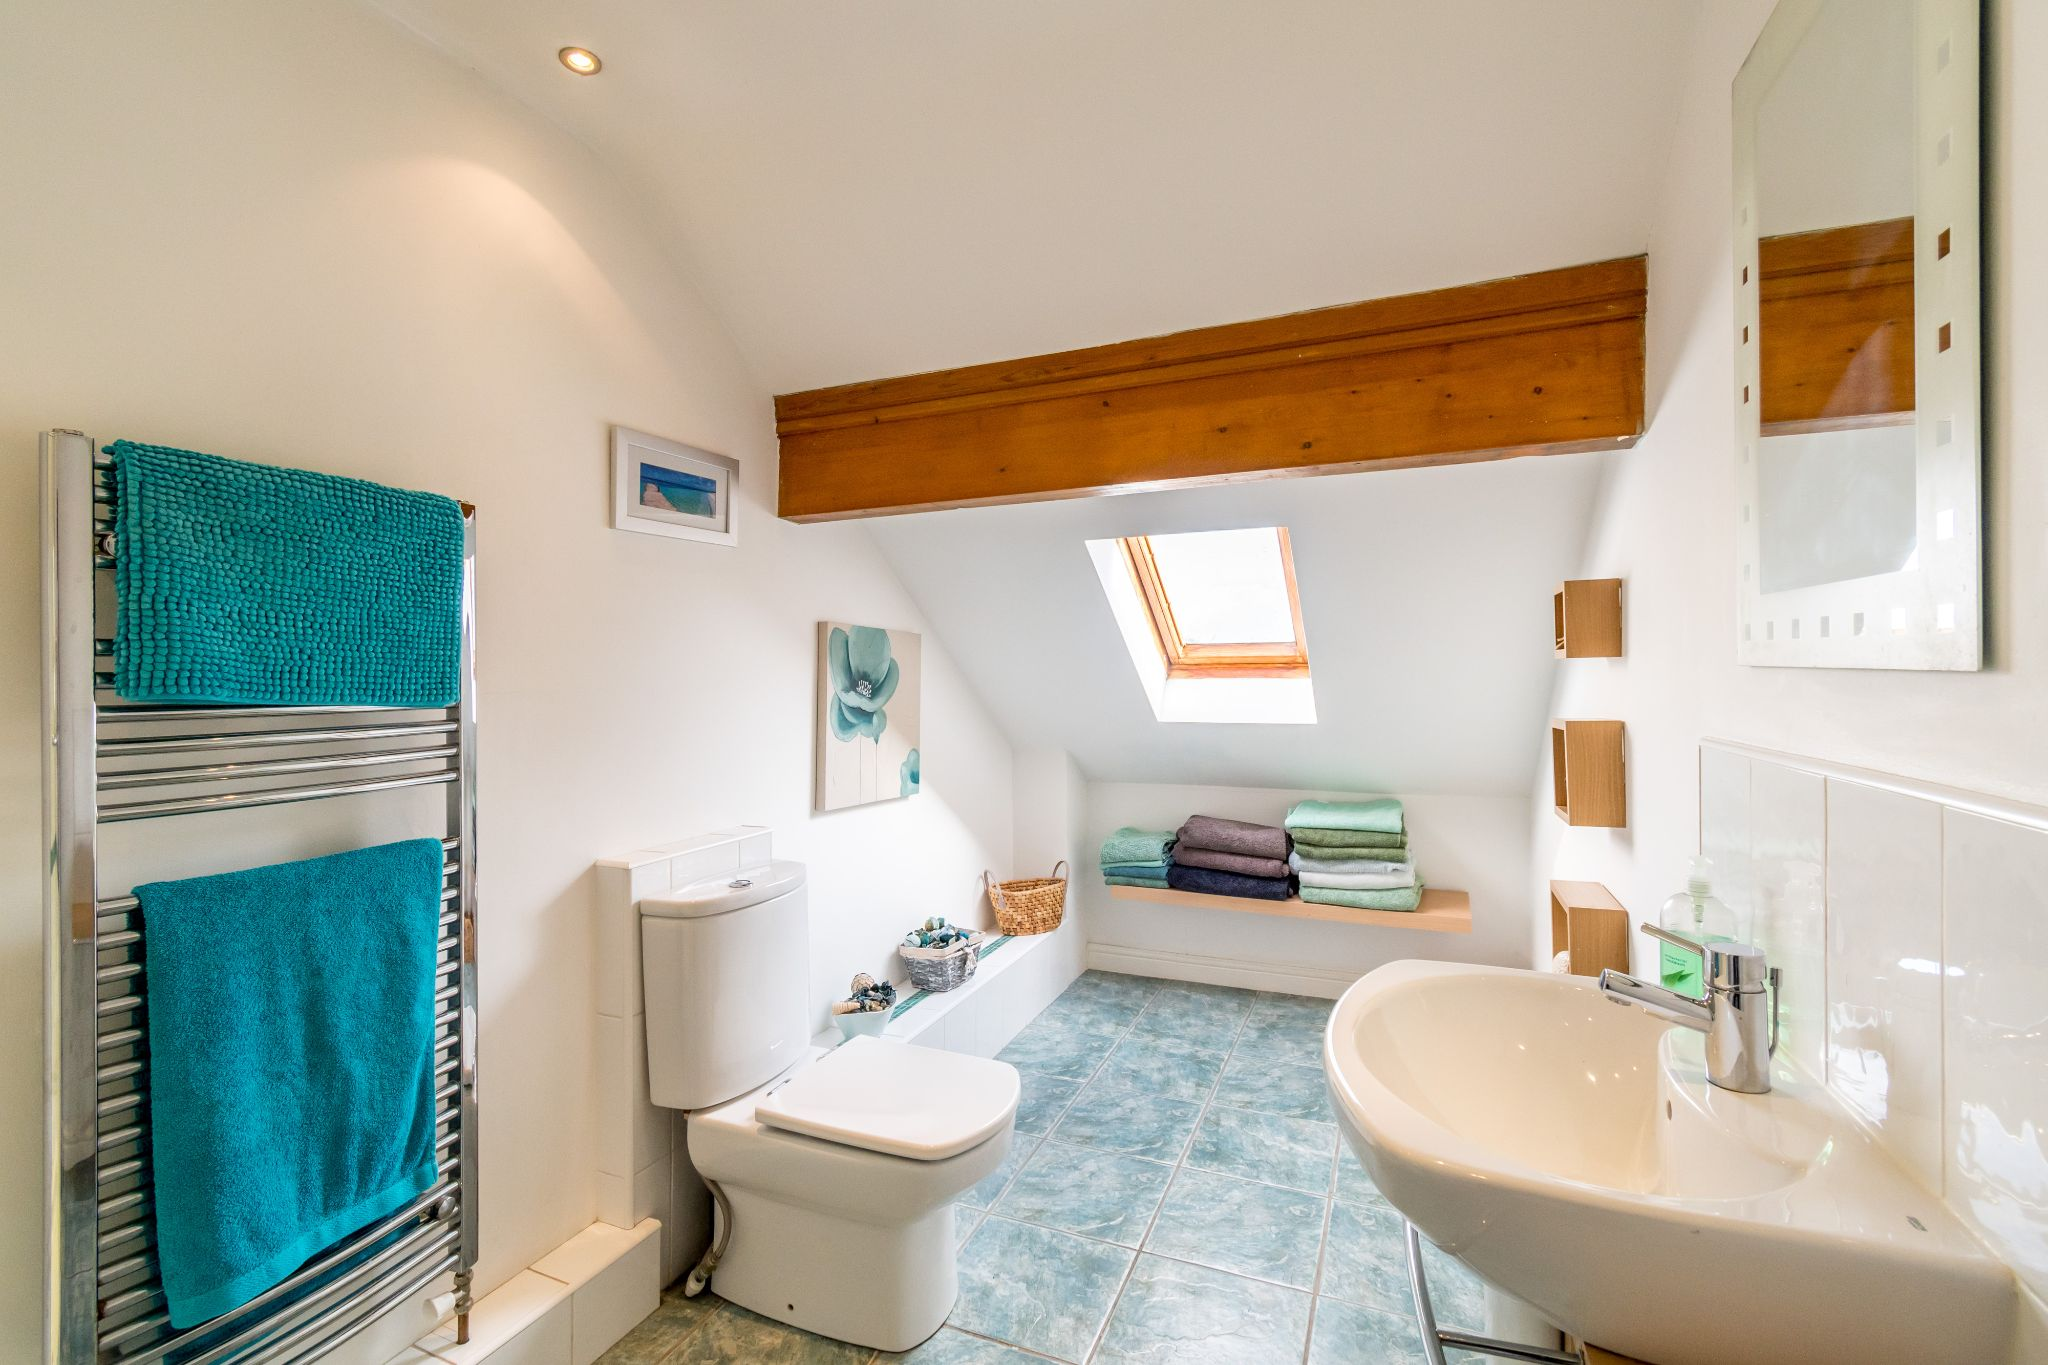 5 bedroom detached house SSTC in Brighouse - Shower room